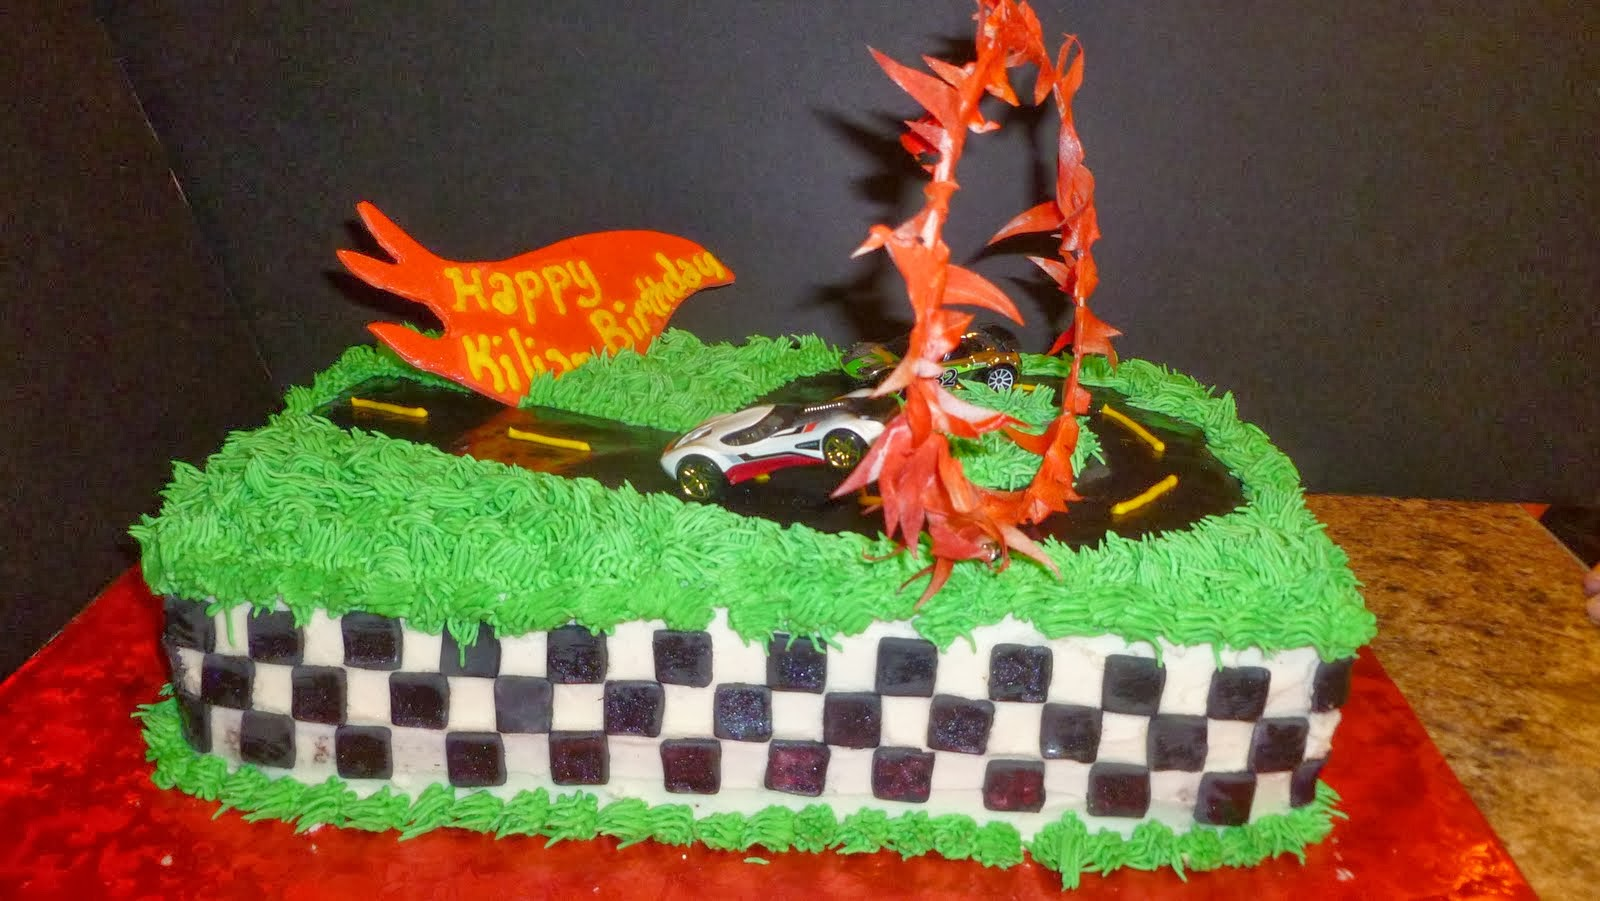 Tortas Hot Wheels, parte 3